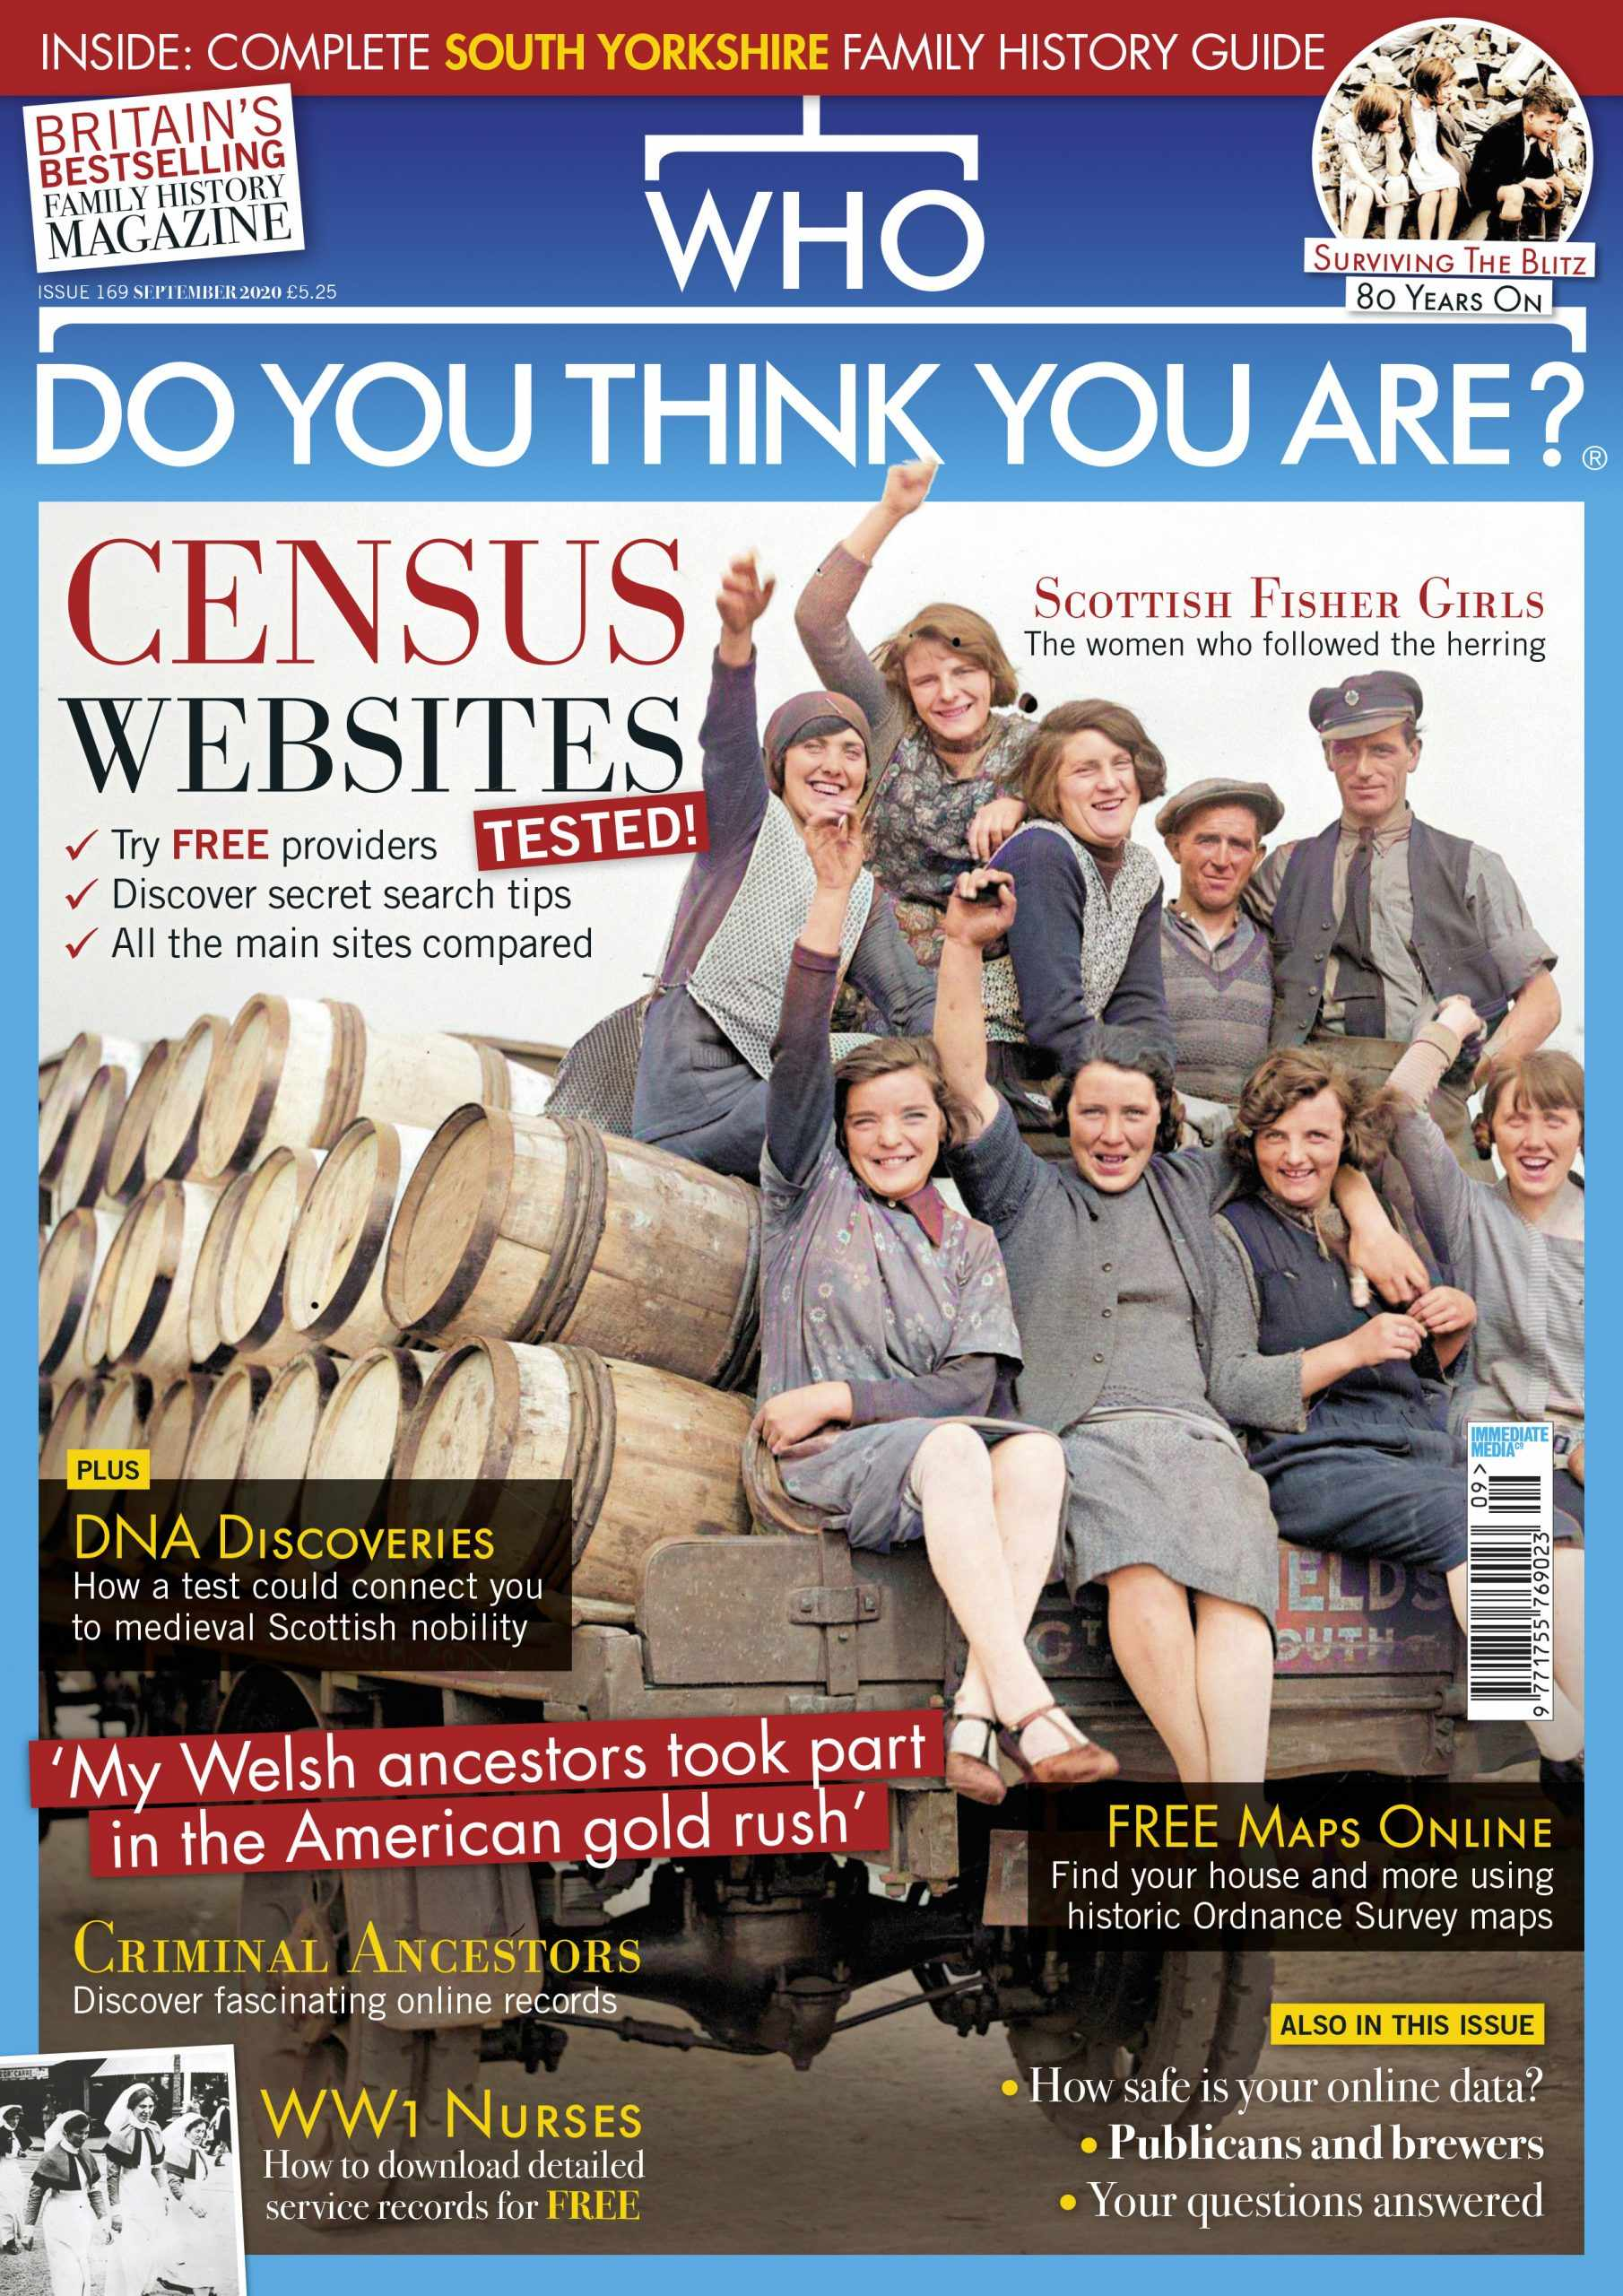 Who Do You Think You Are? Magazine September 2020 cover showing Scottish fisher girls